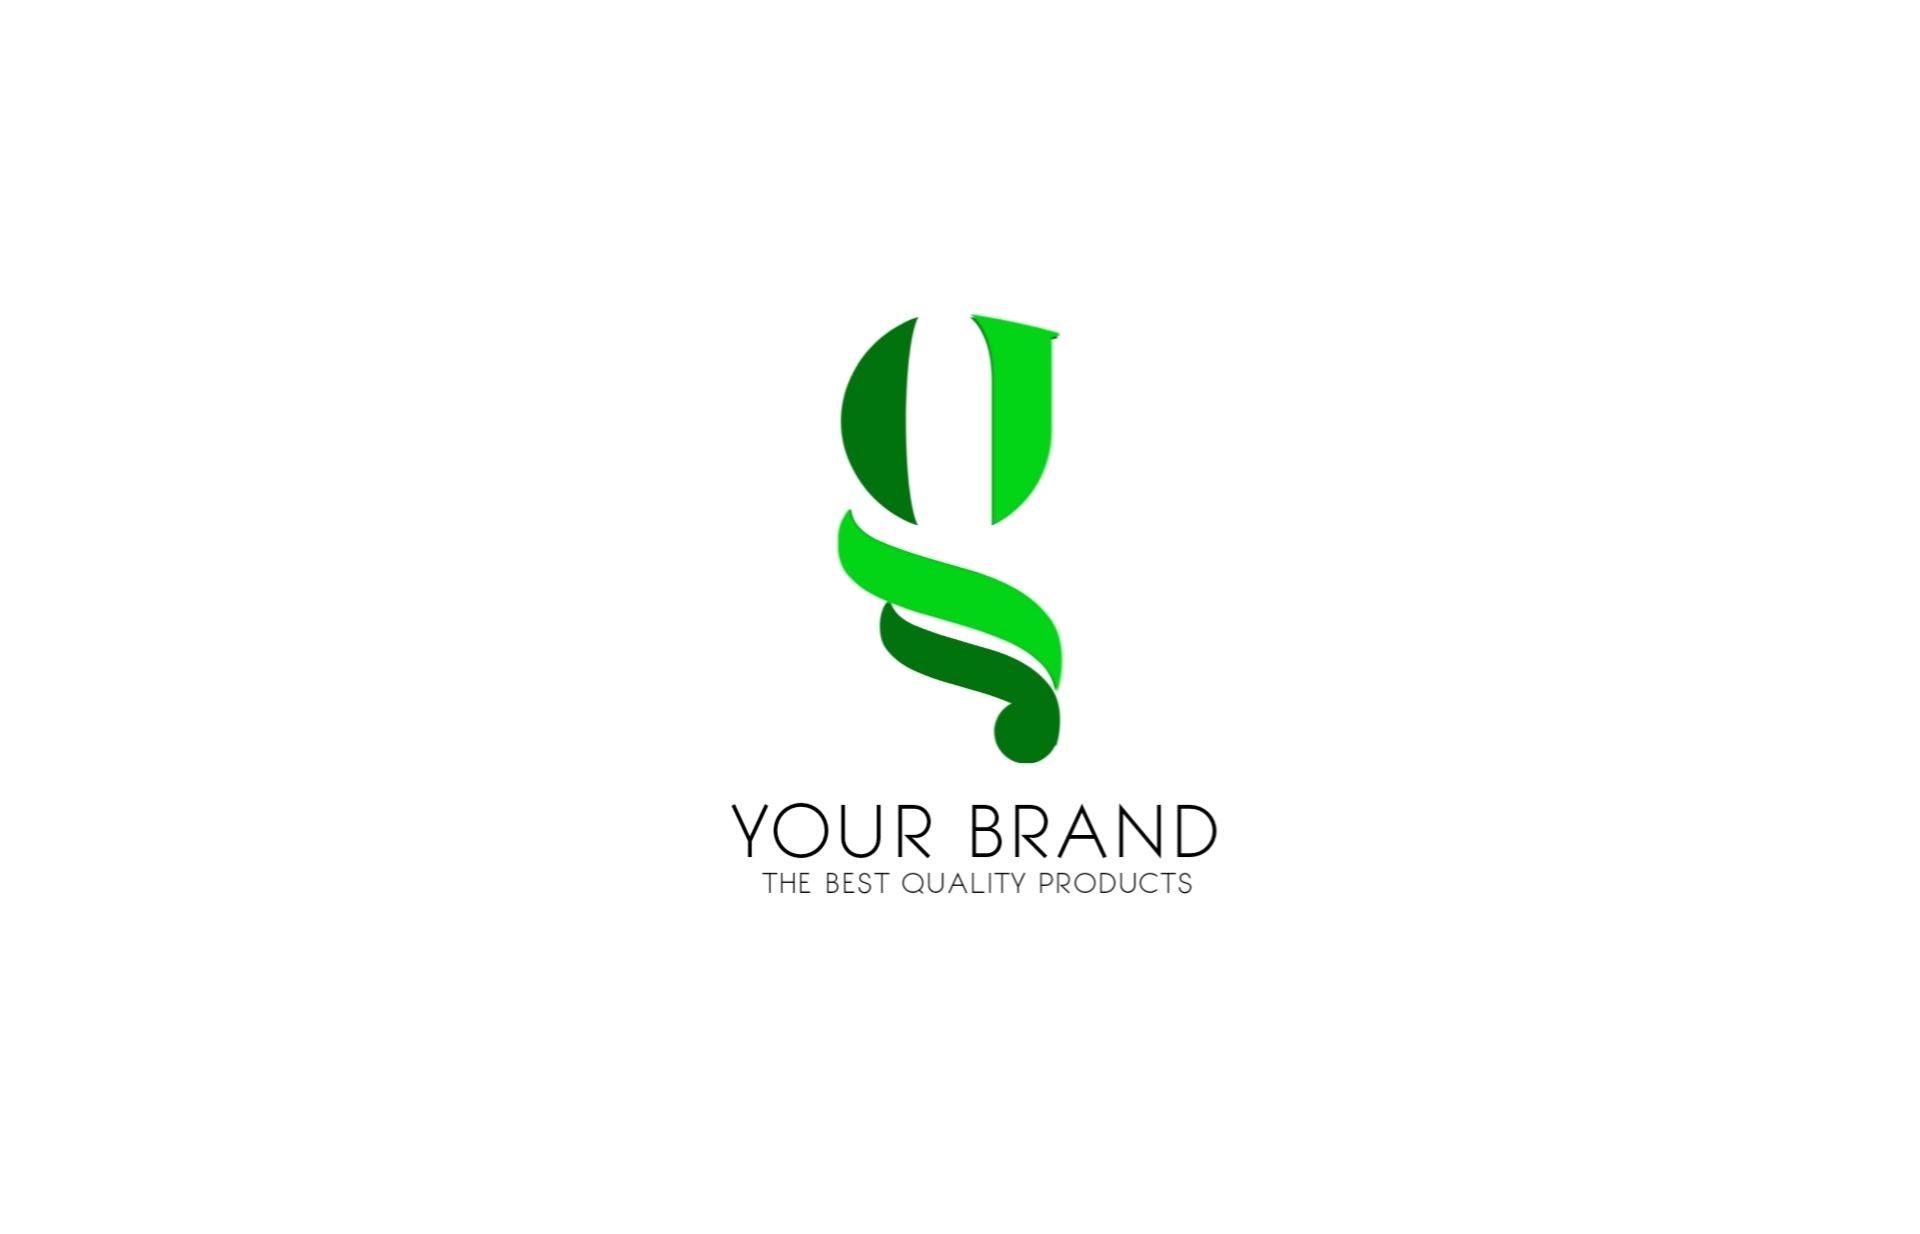 I can create a design logos from your brand